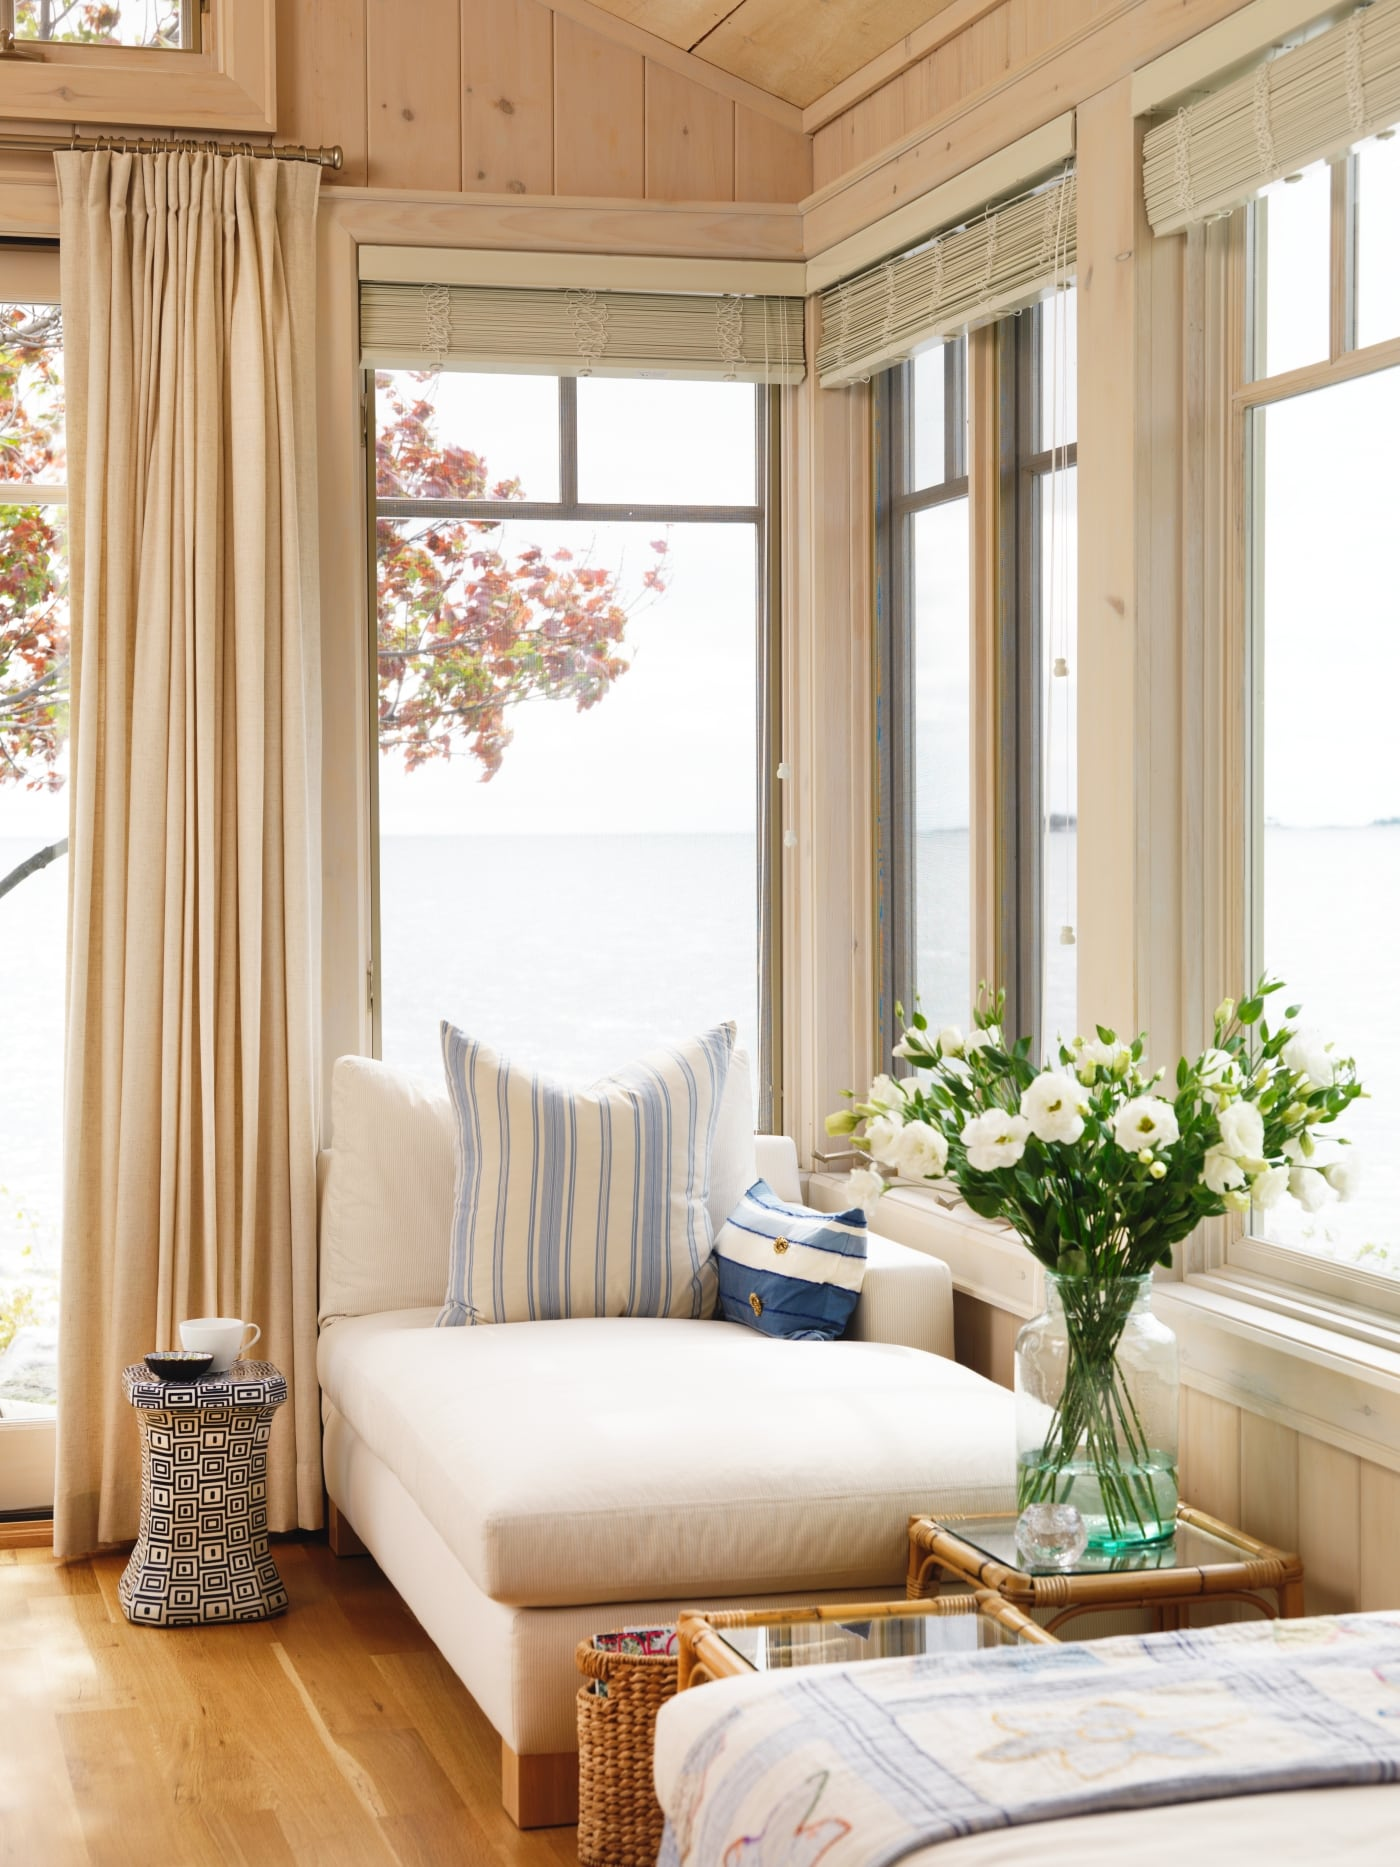 White sofa lounge in bright corner of sun room with knotty pine paneling